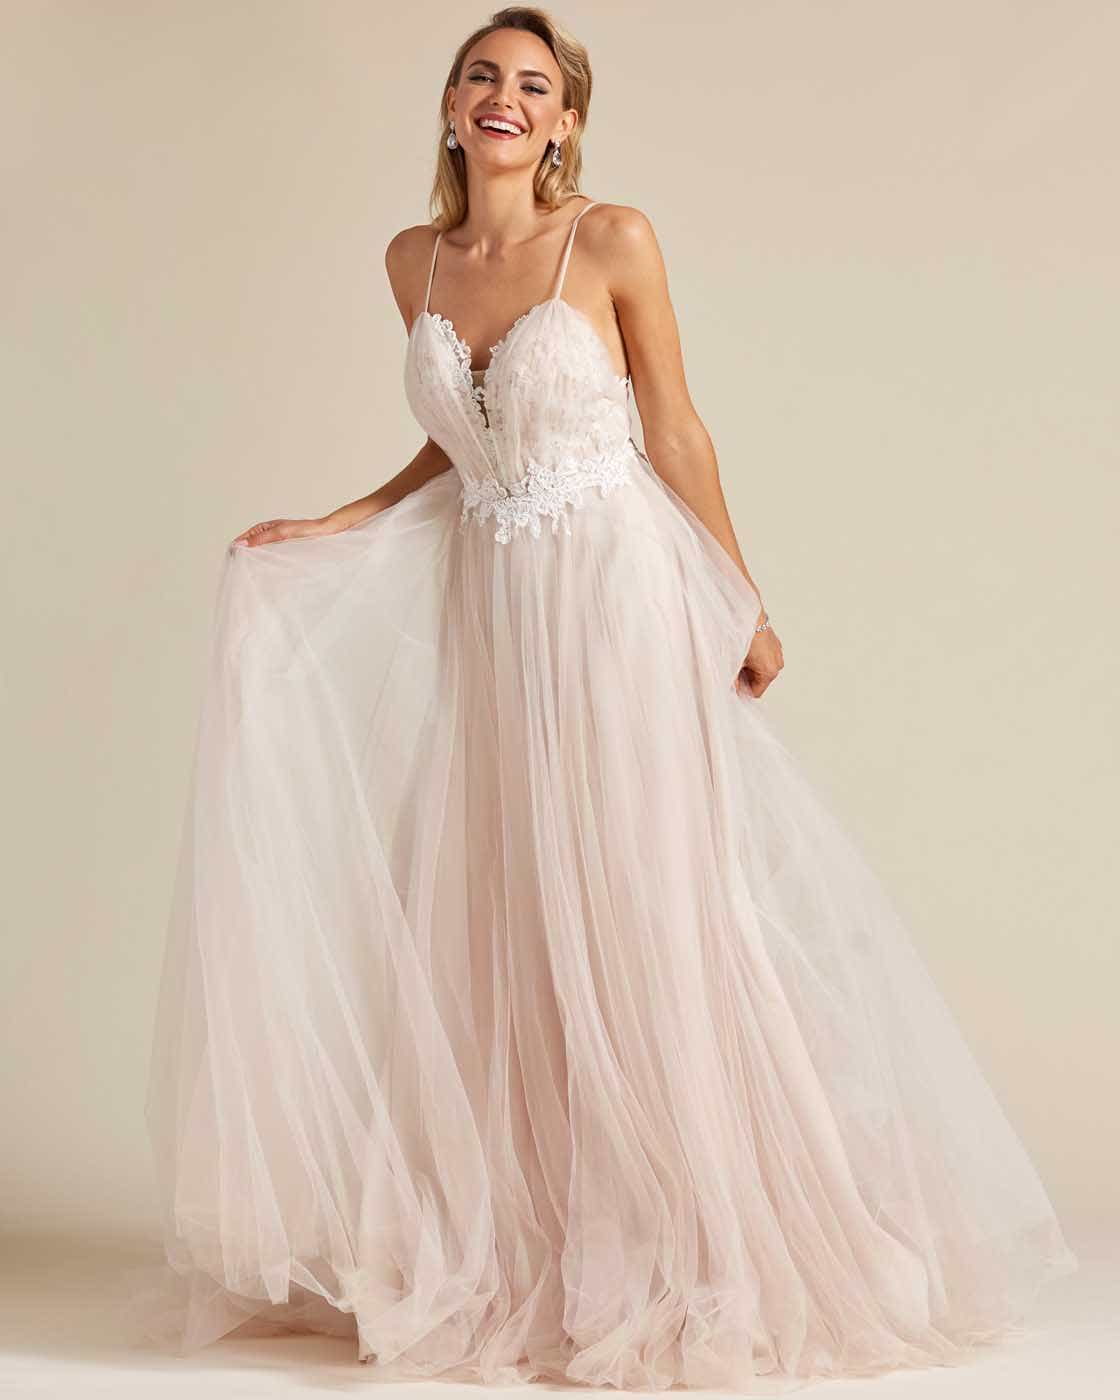 Champagne White Embroidery Long Length Wedding Gown - Detail Front